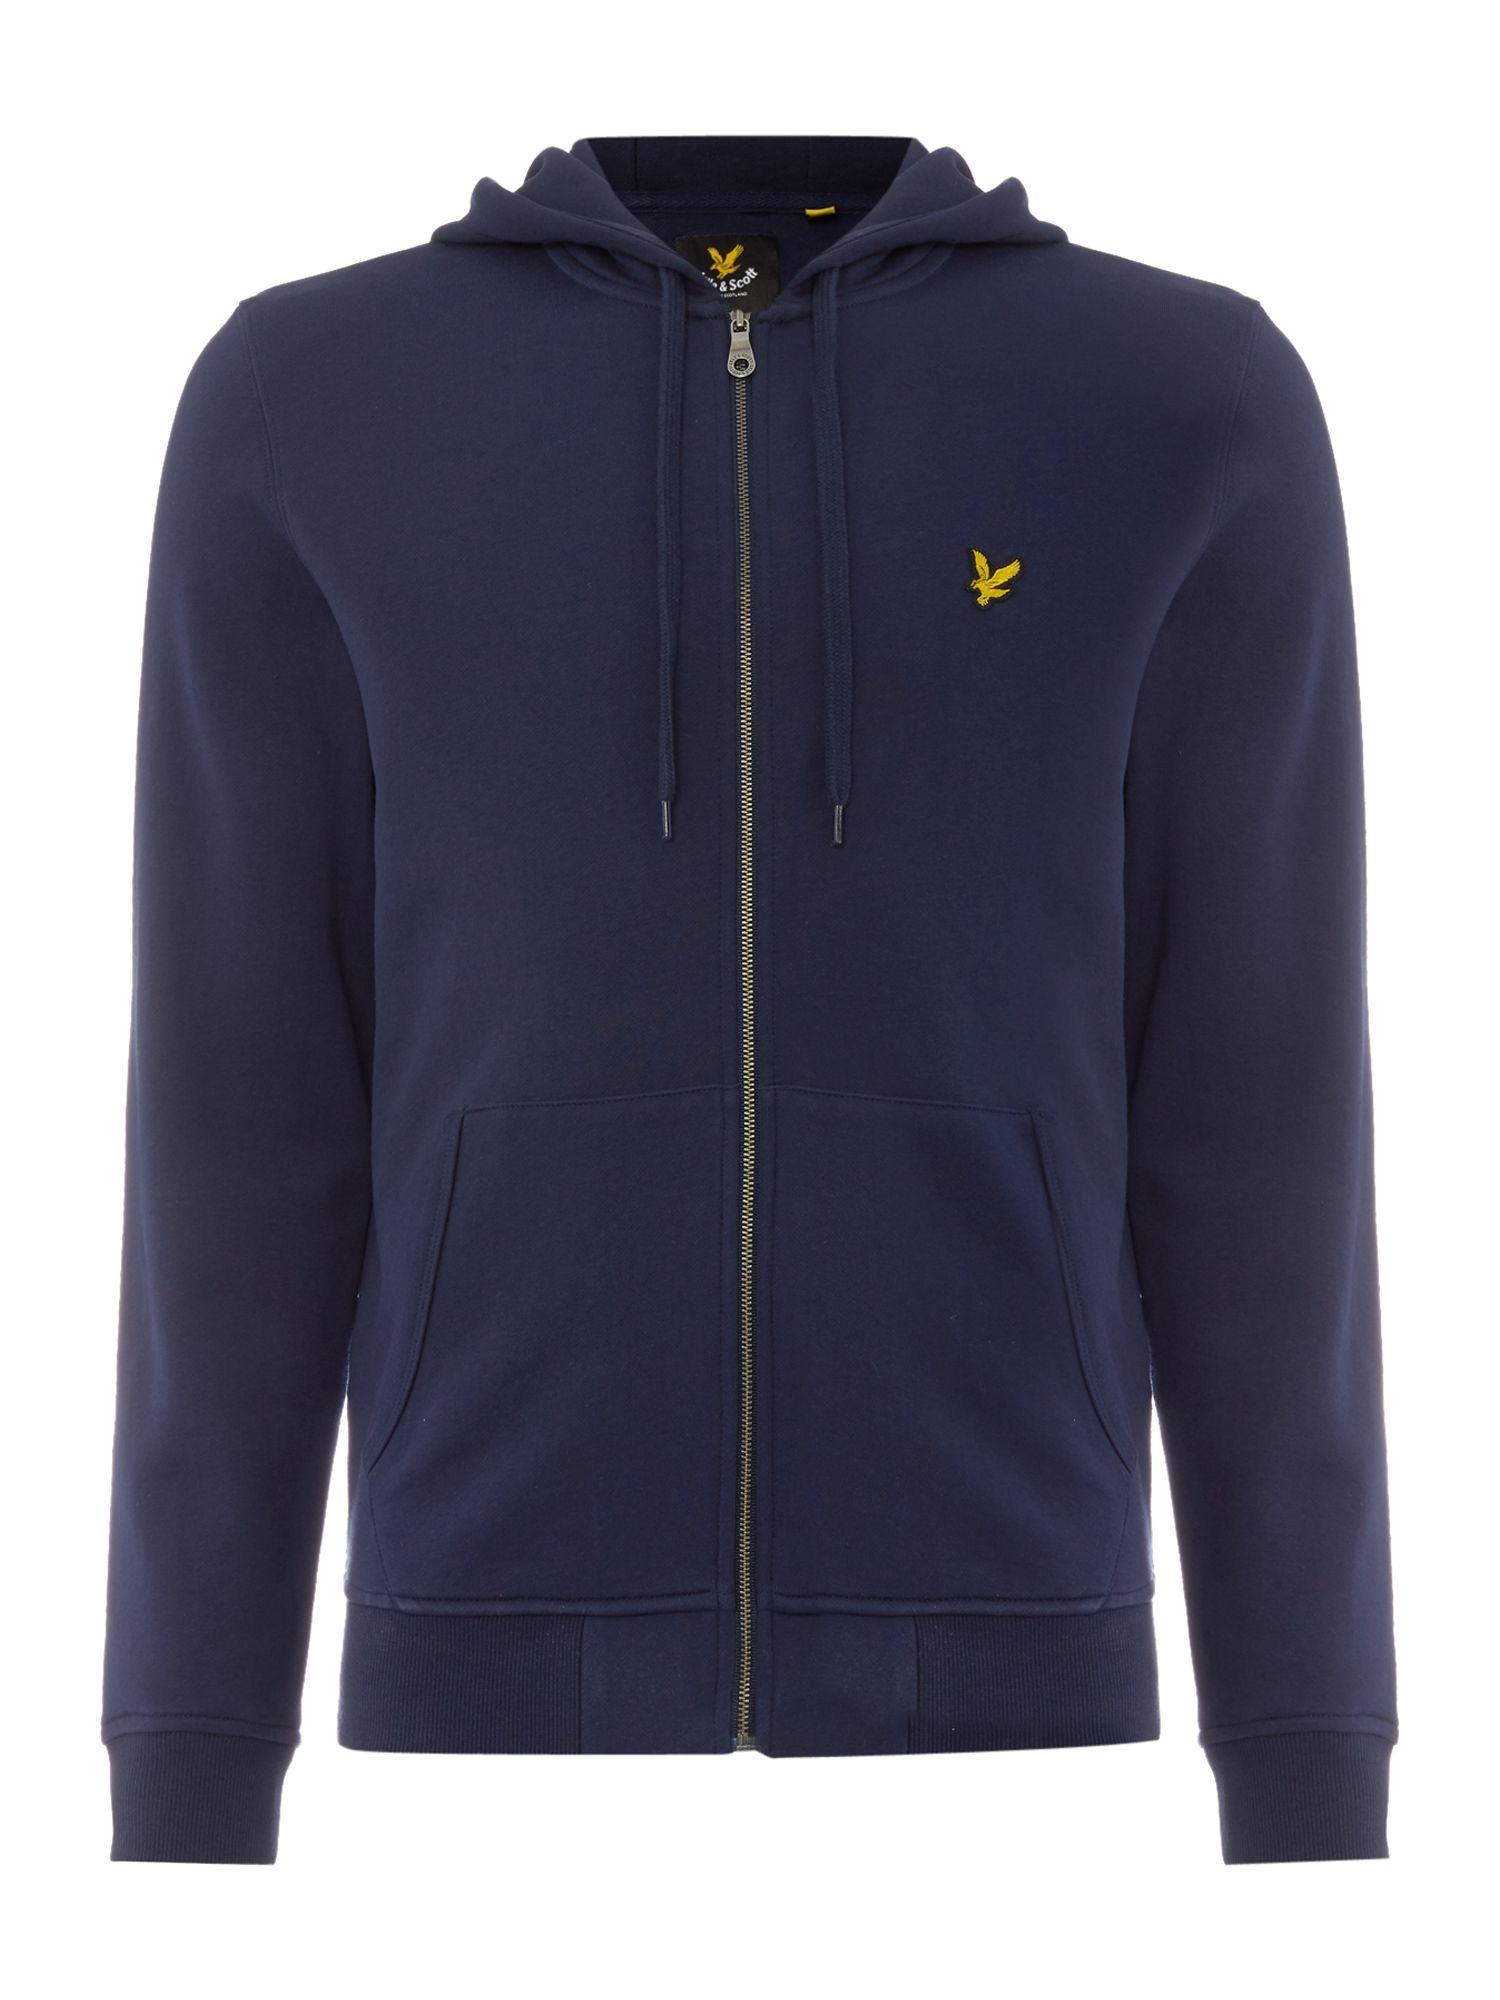 Men's Lyle and Scott Zip Through Hooded Sweatshirt, Blue